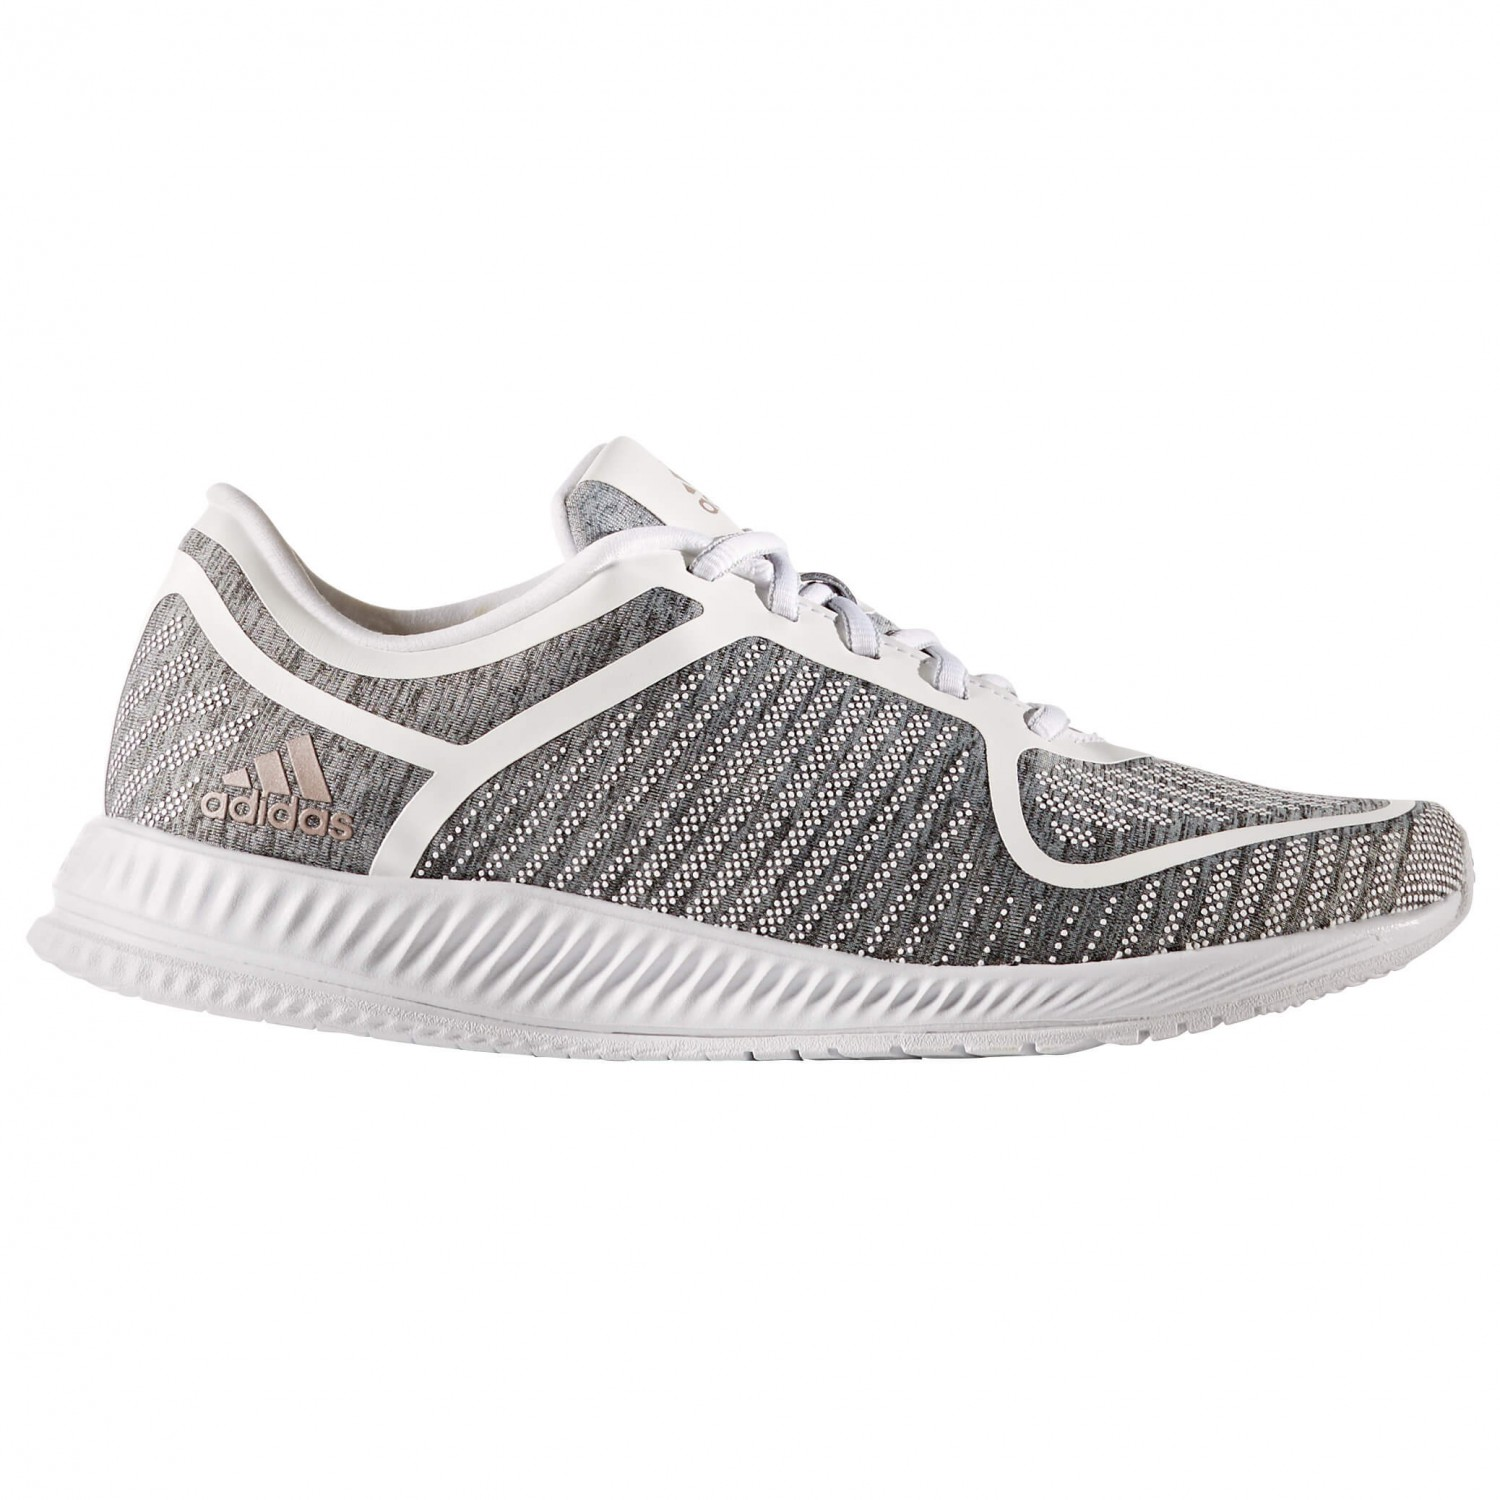 Heather f16 Fitnessschuh Light VapMet Ftwr Fitnessschuhe Grey Athletics Bounce Adidas Women's White5uk 9H2EDI